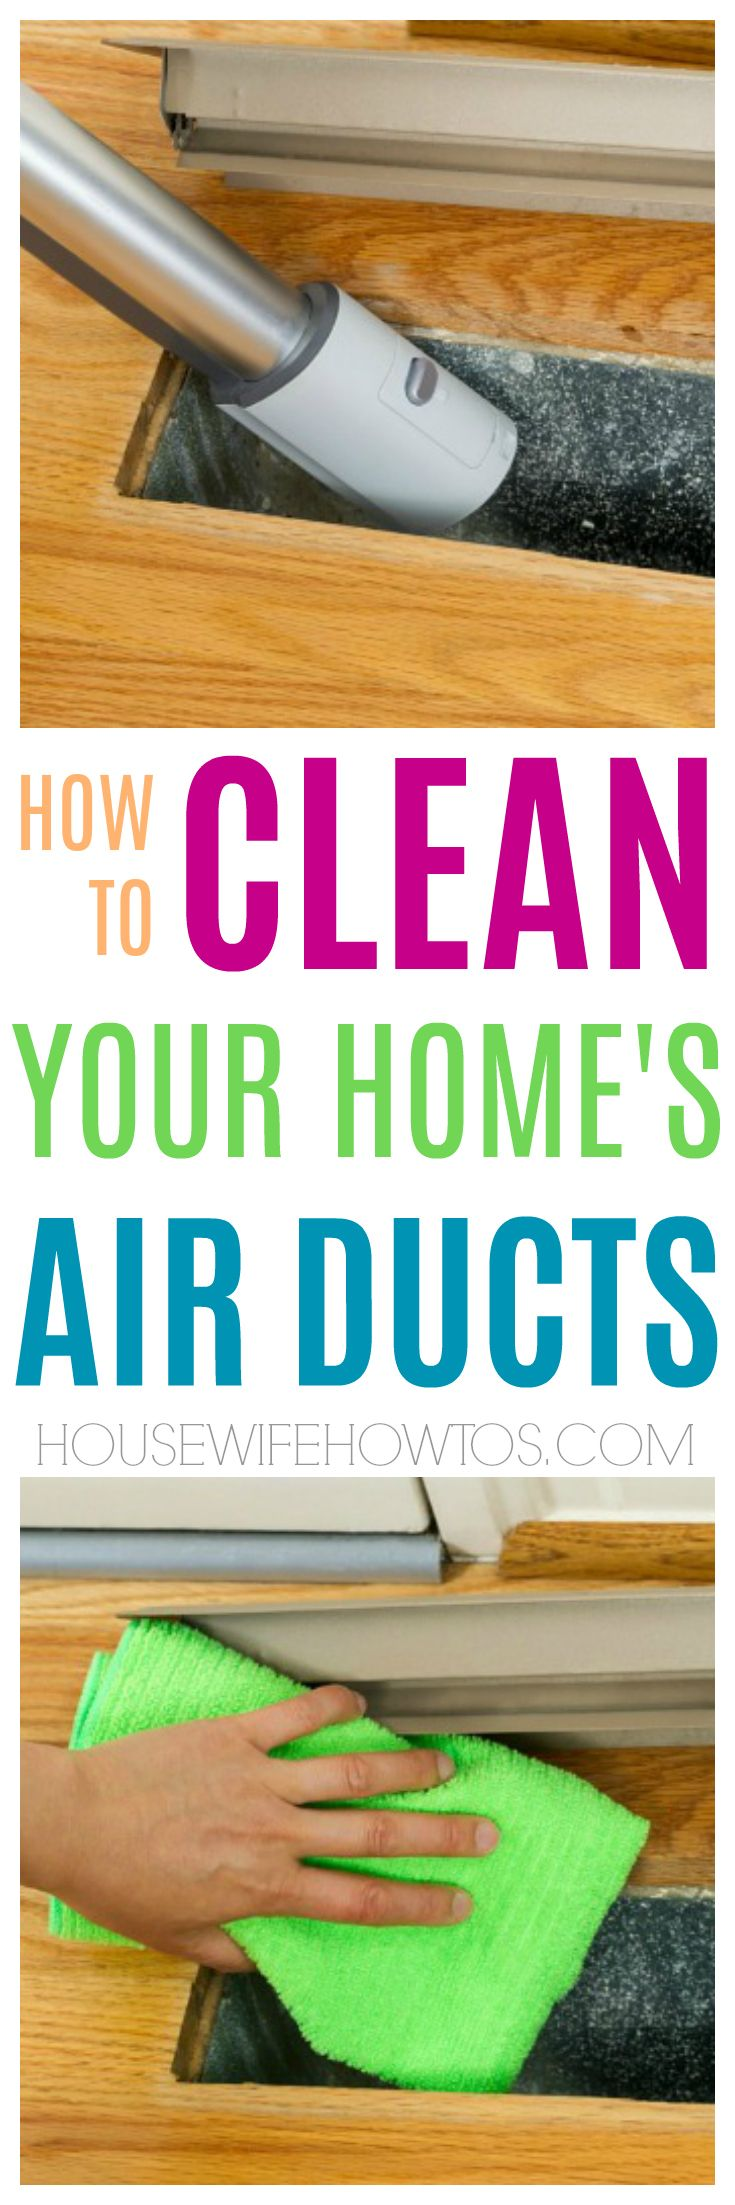 How To Clean Your Own Air Ducts I Had No Idea You Can